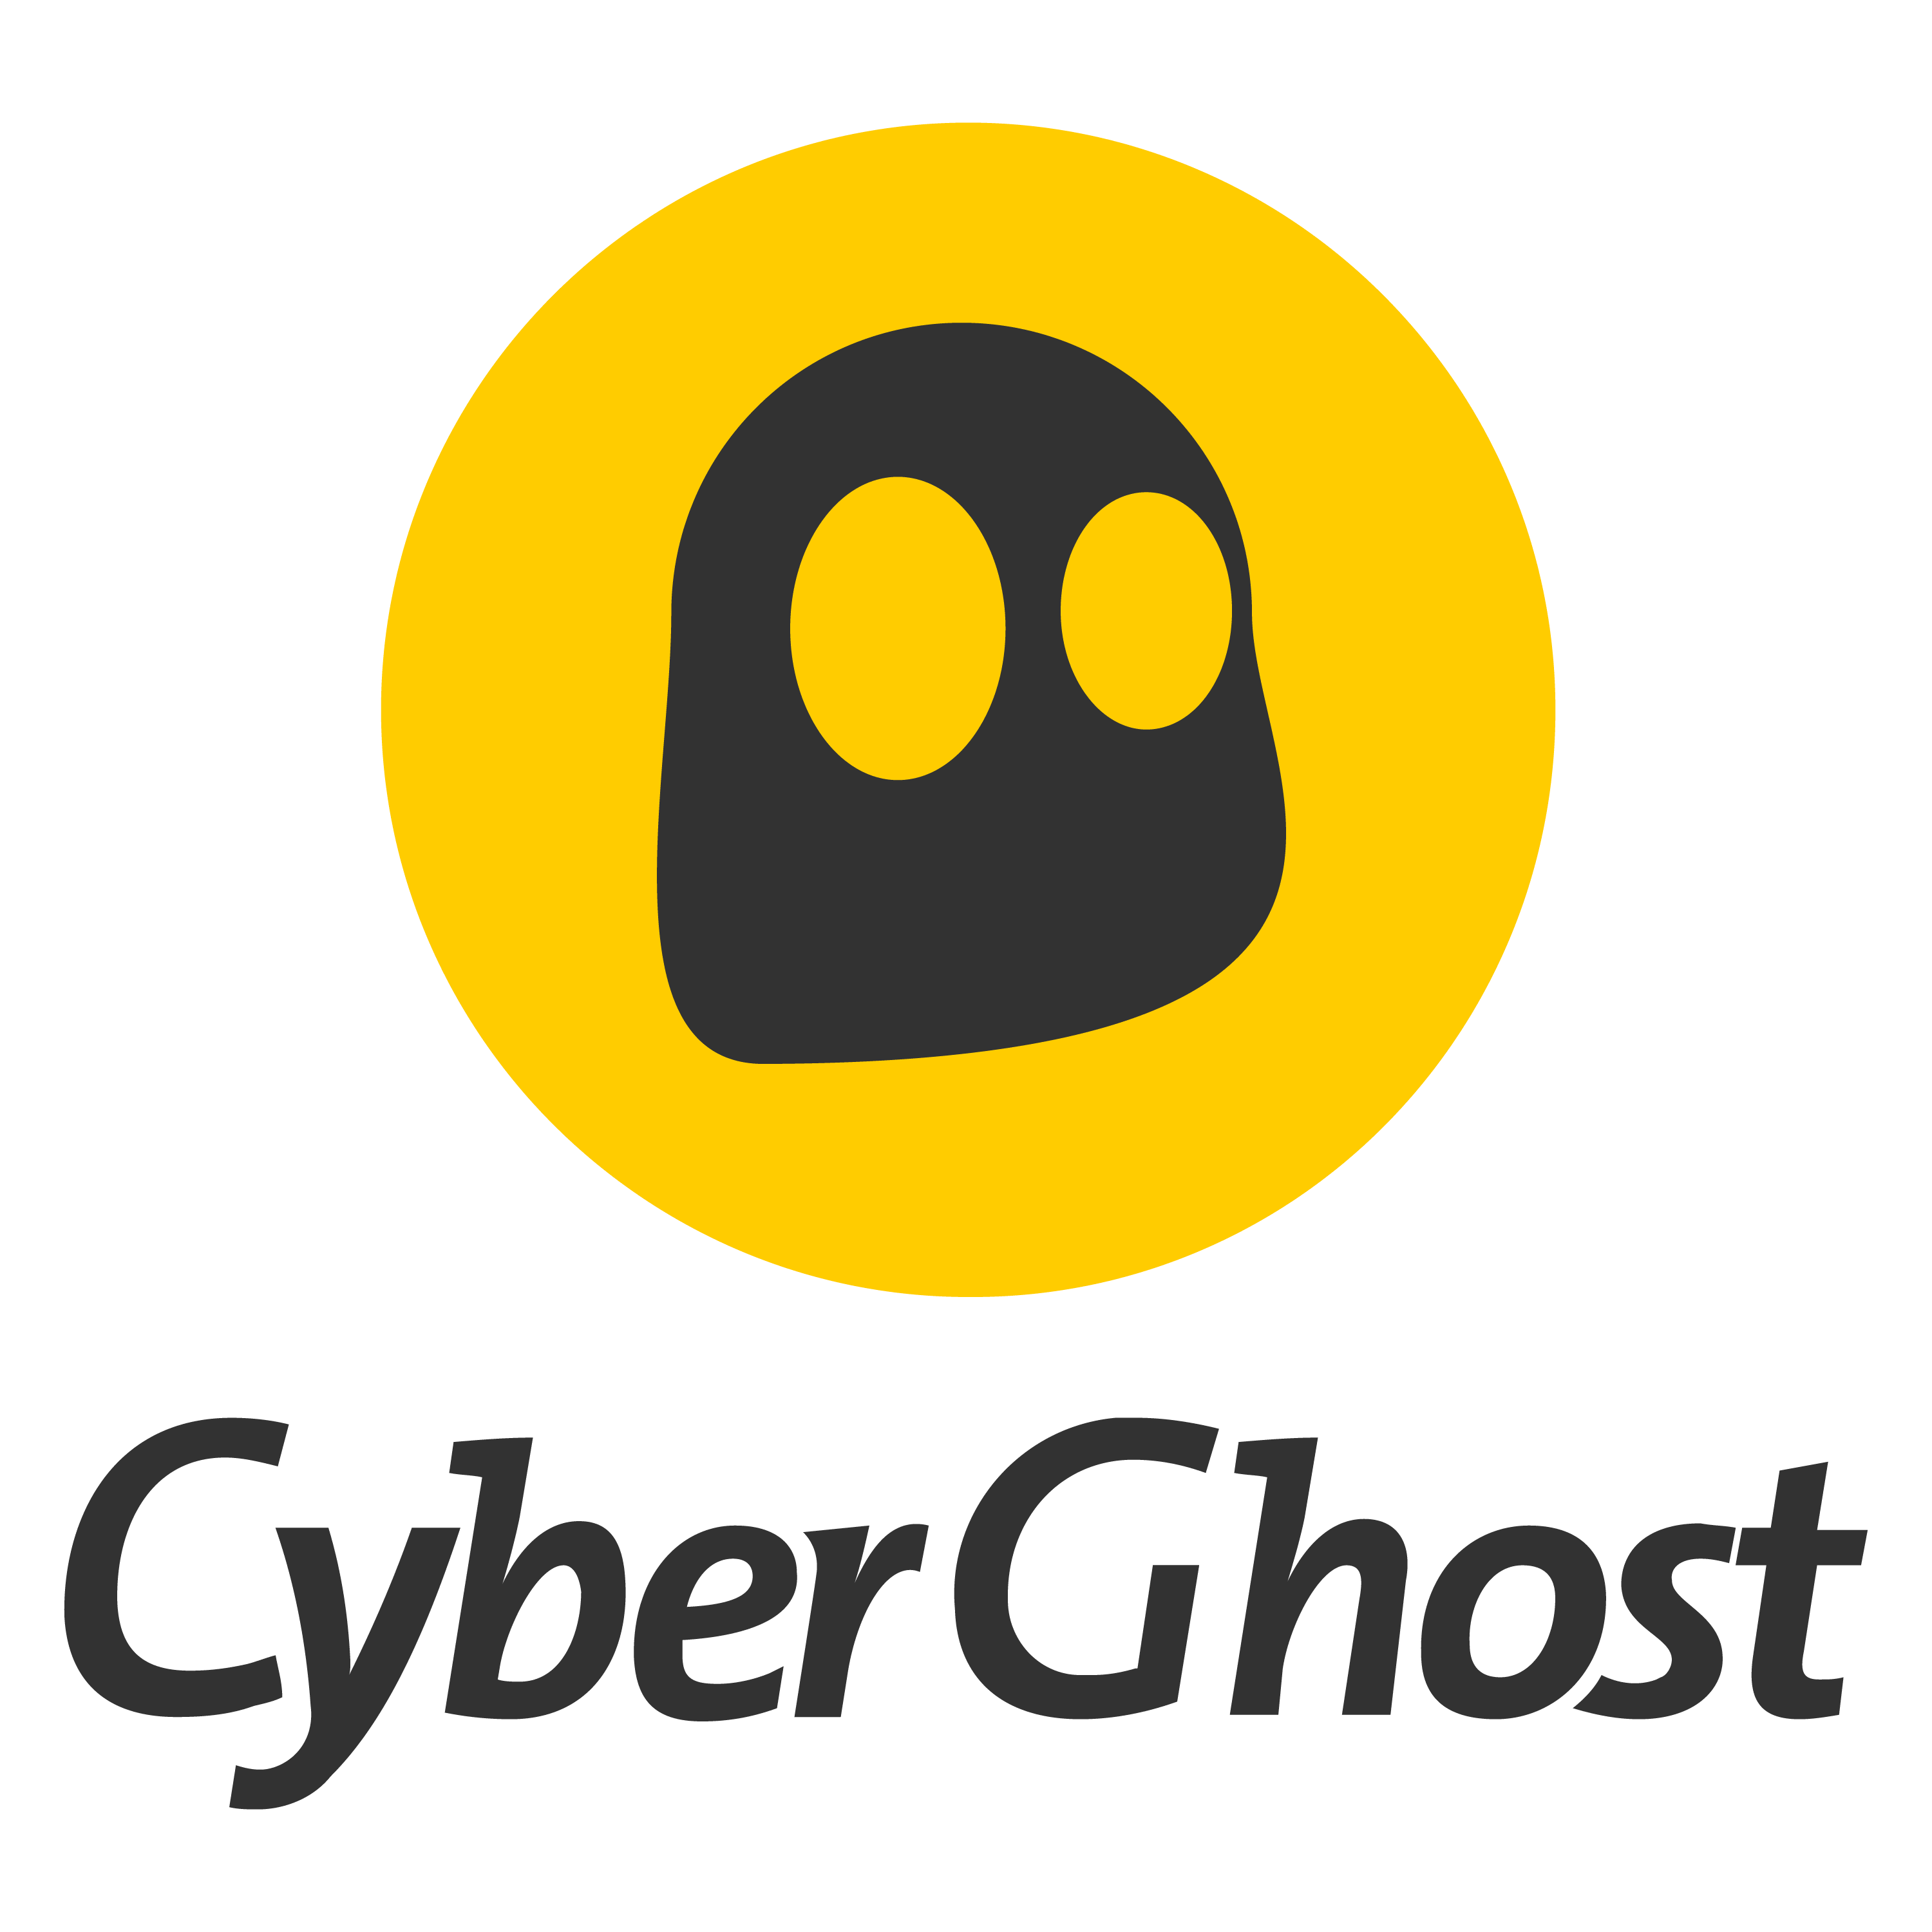 CyberGhost PNG Logo Large